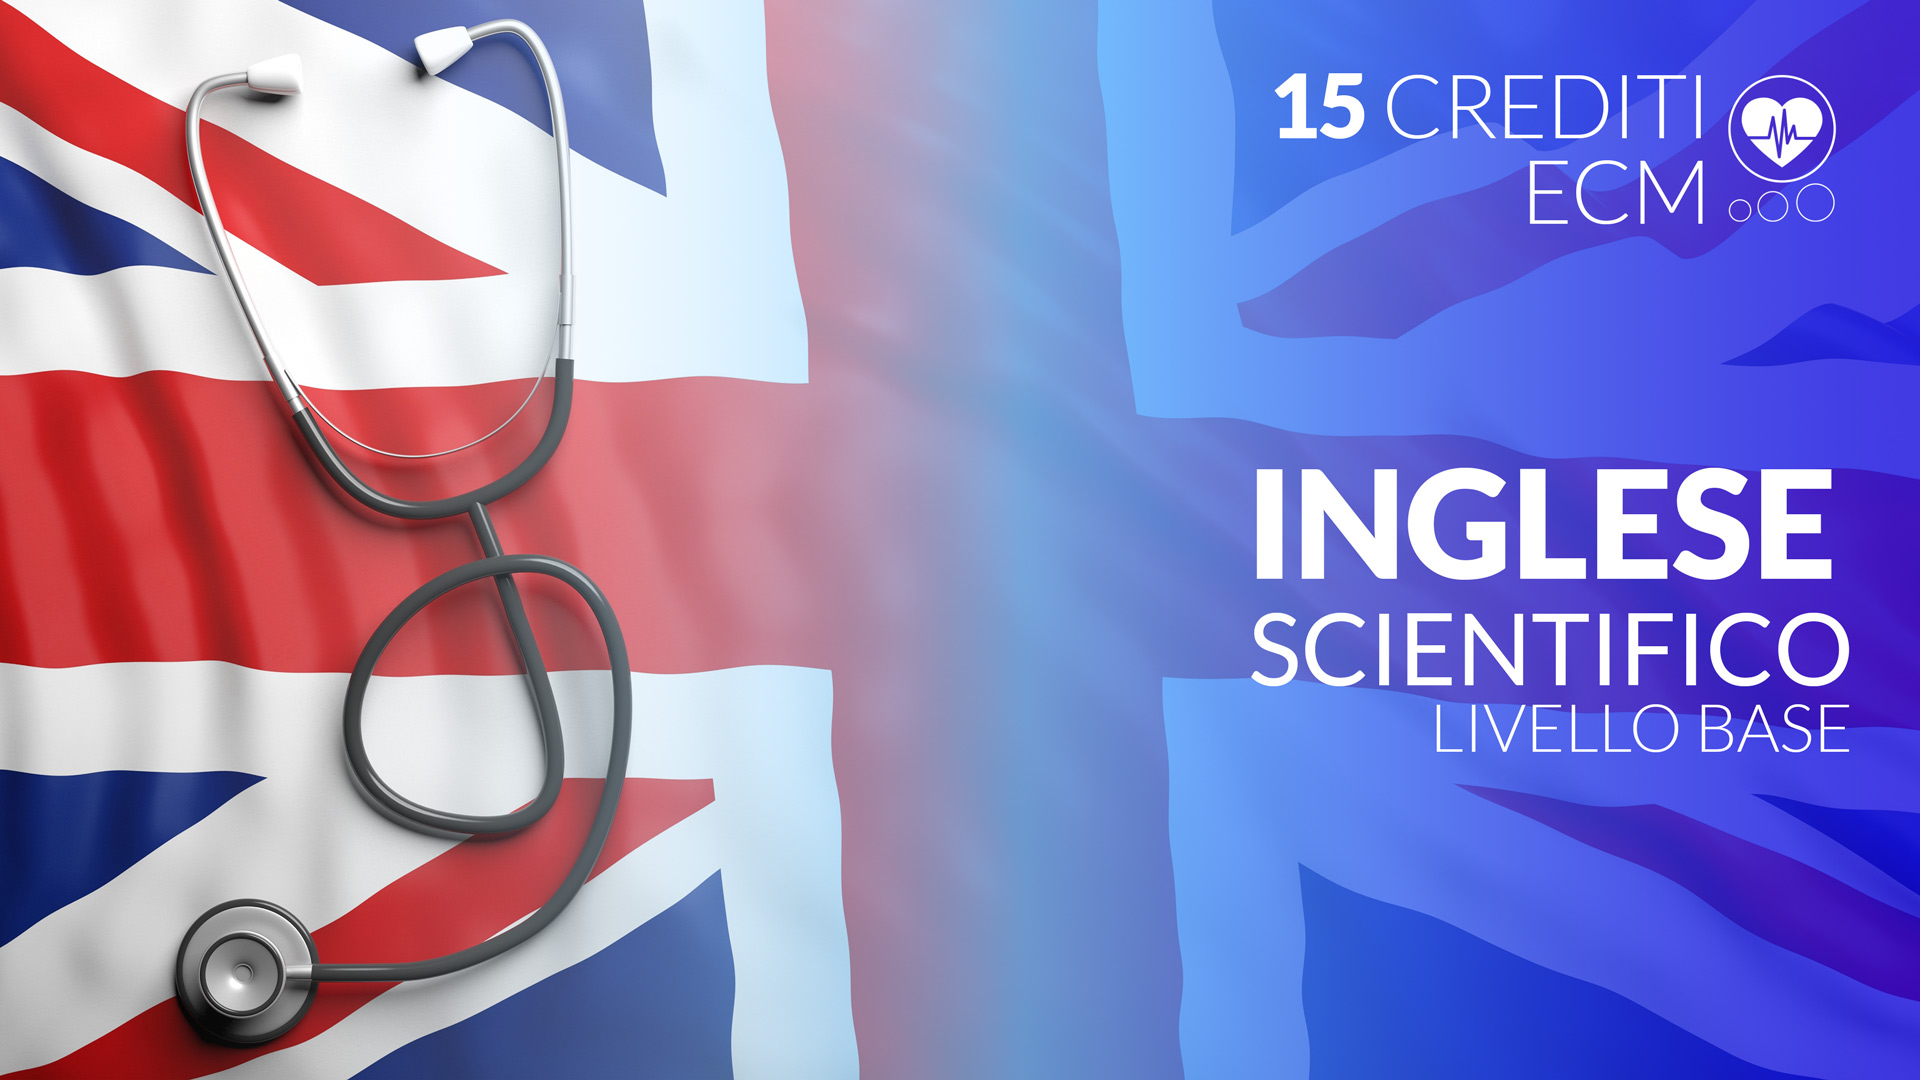 Inglese scientifico – livello base